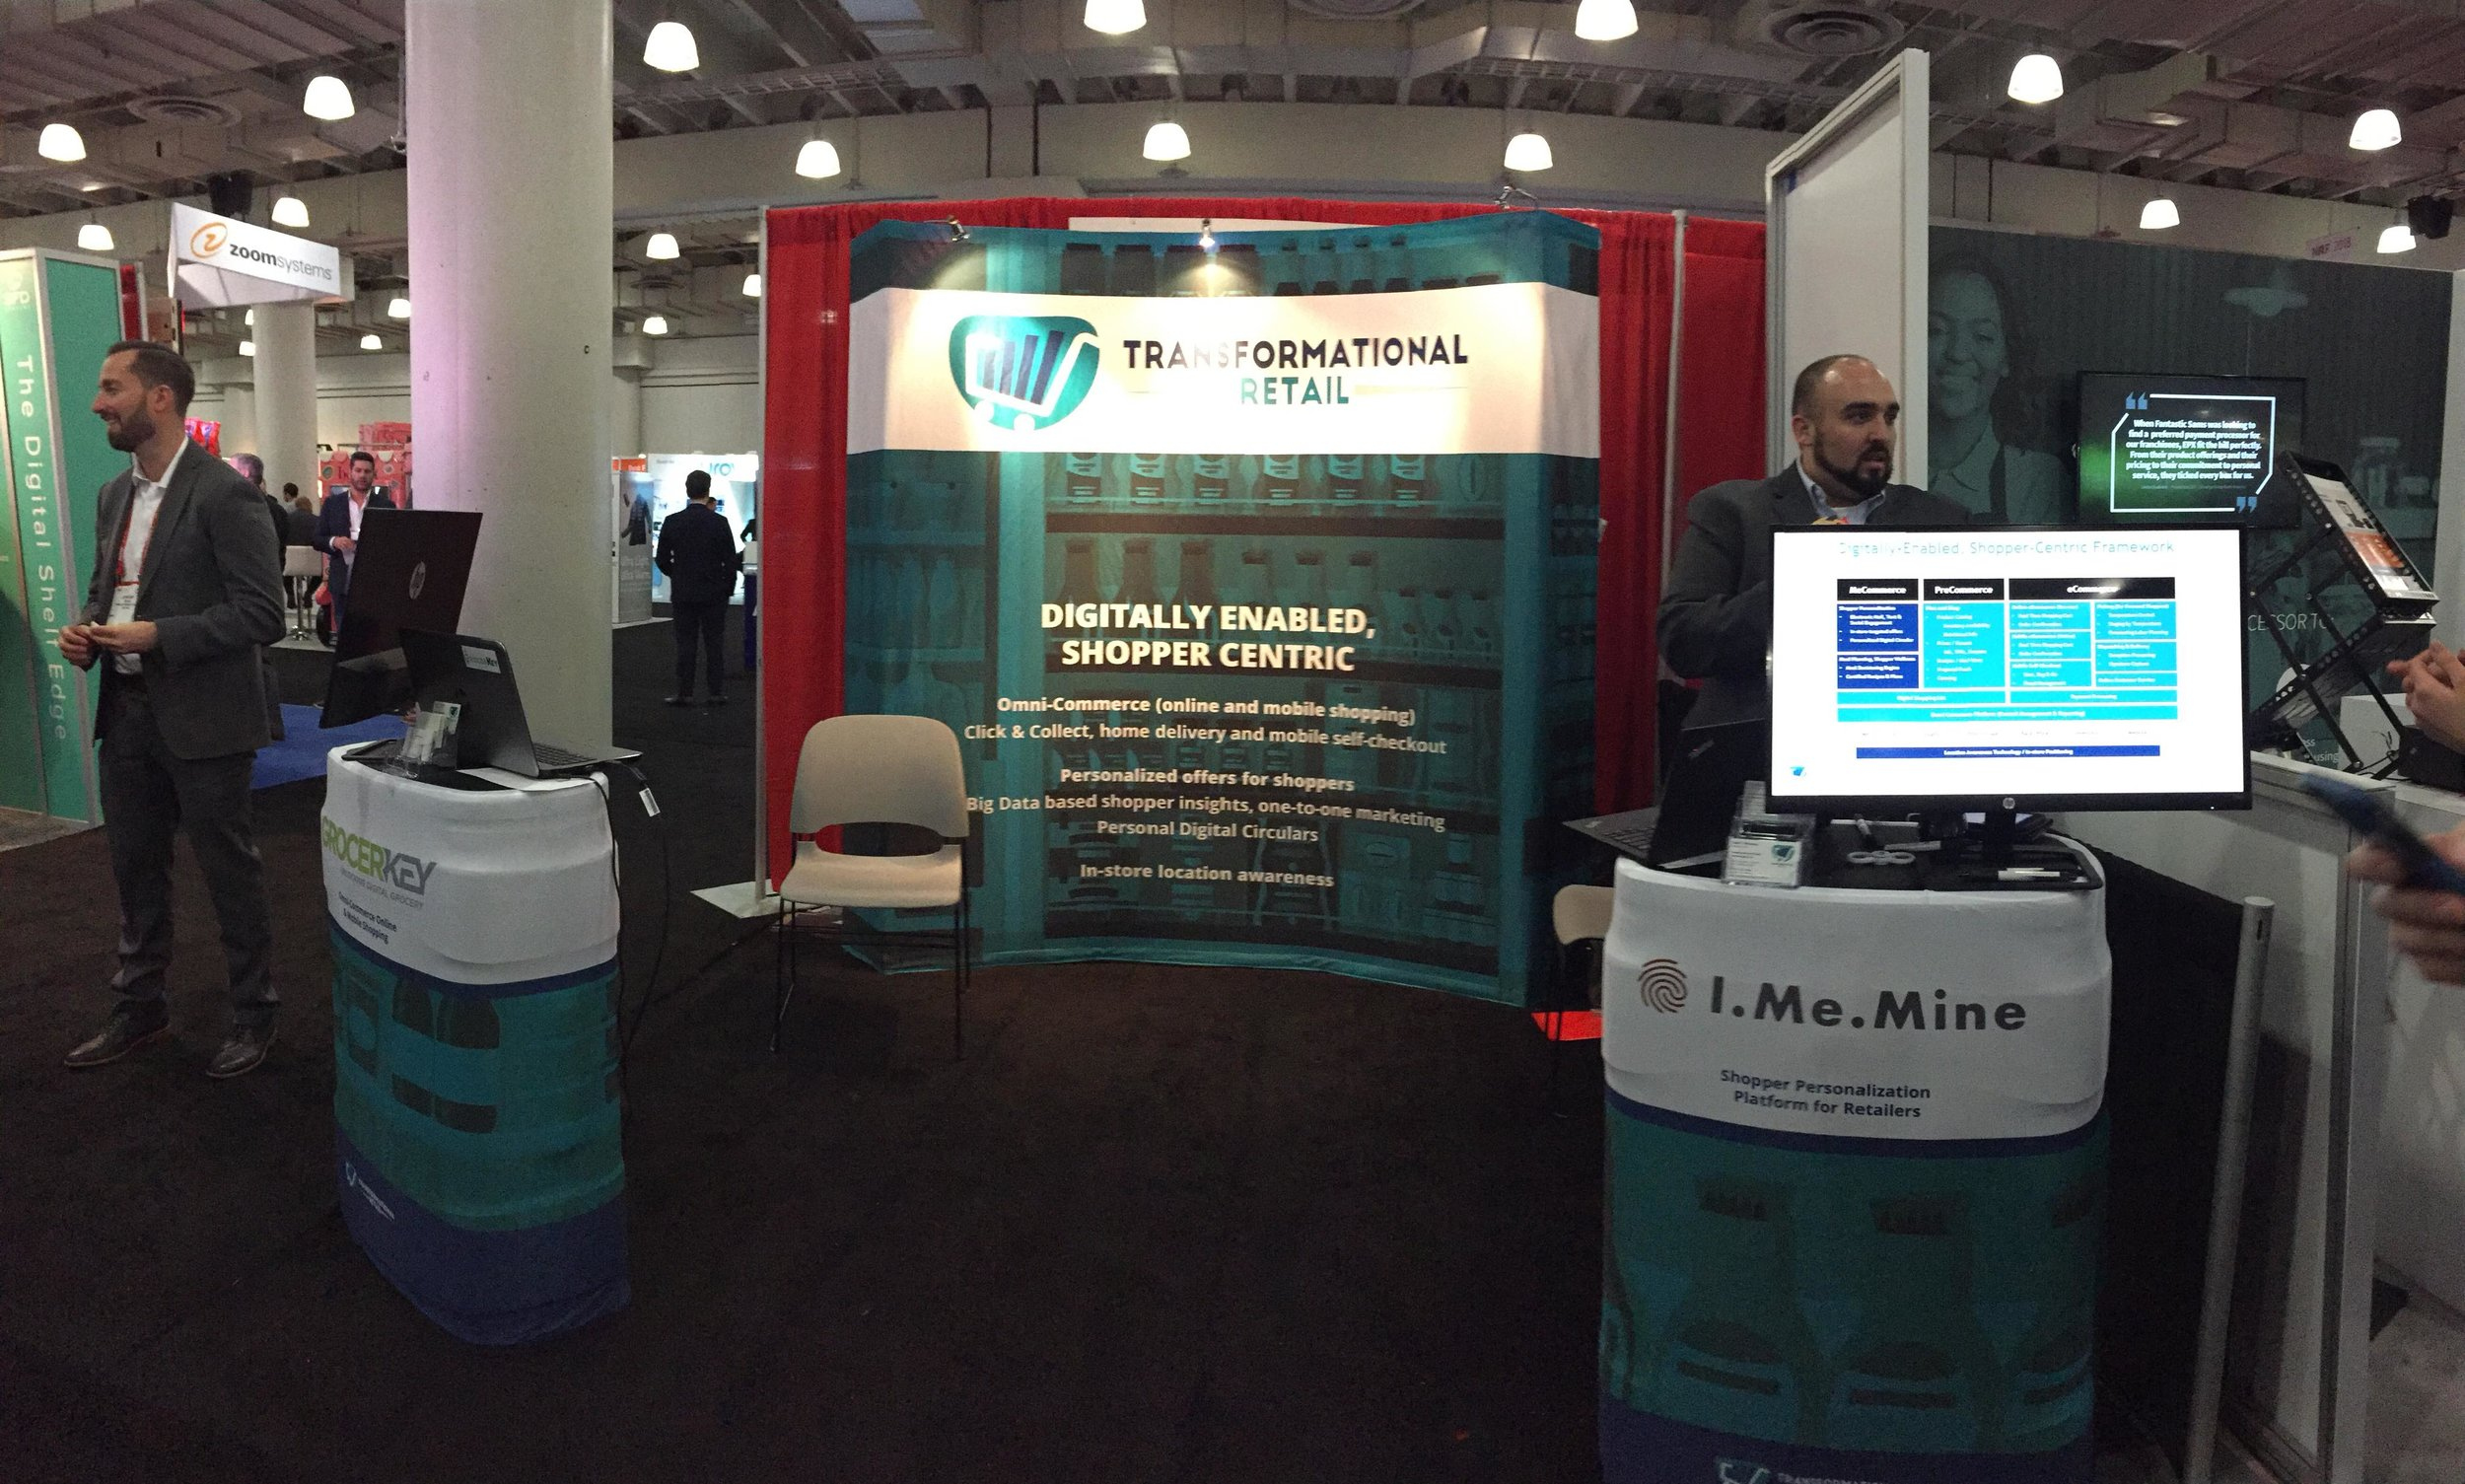 Transformational Retail booth at NRF2018